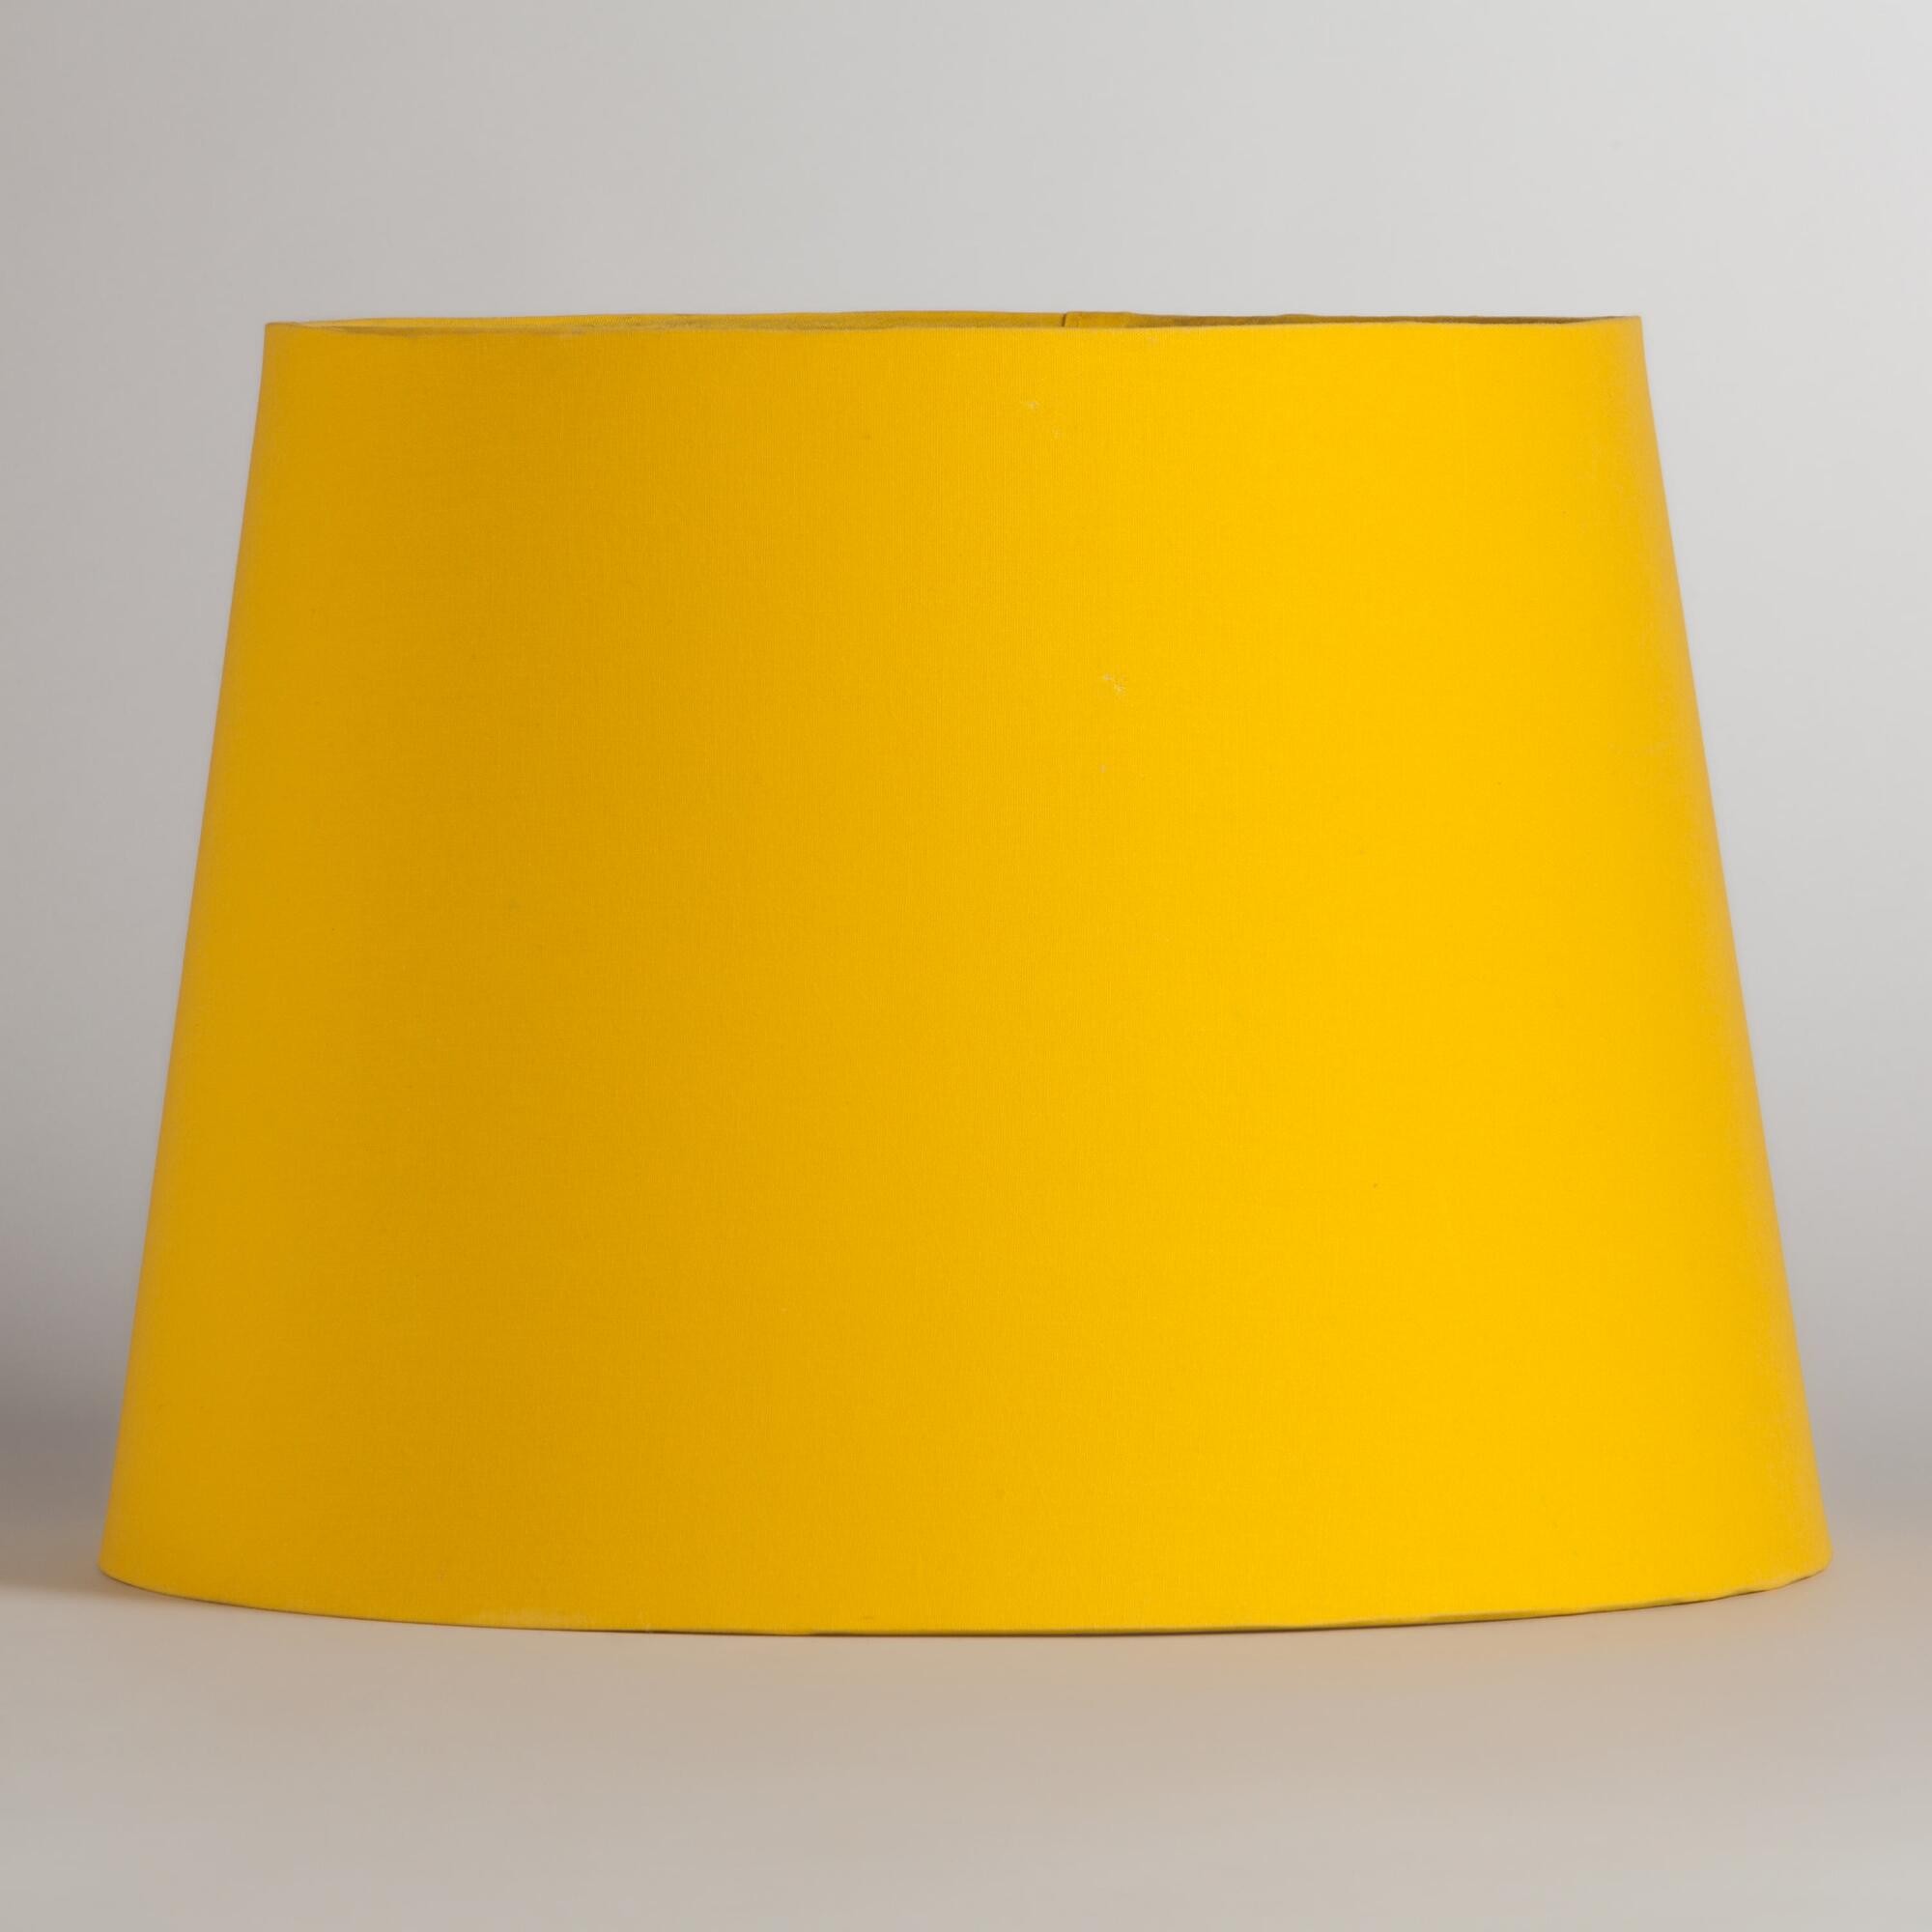 only yellow home lamps table butter target chandeliers for ideas exceptional lamp cheap of bright at lighting size shades full pictures